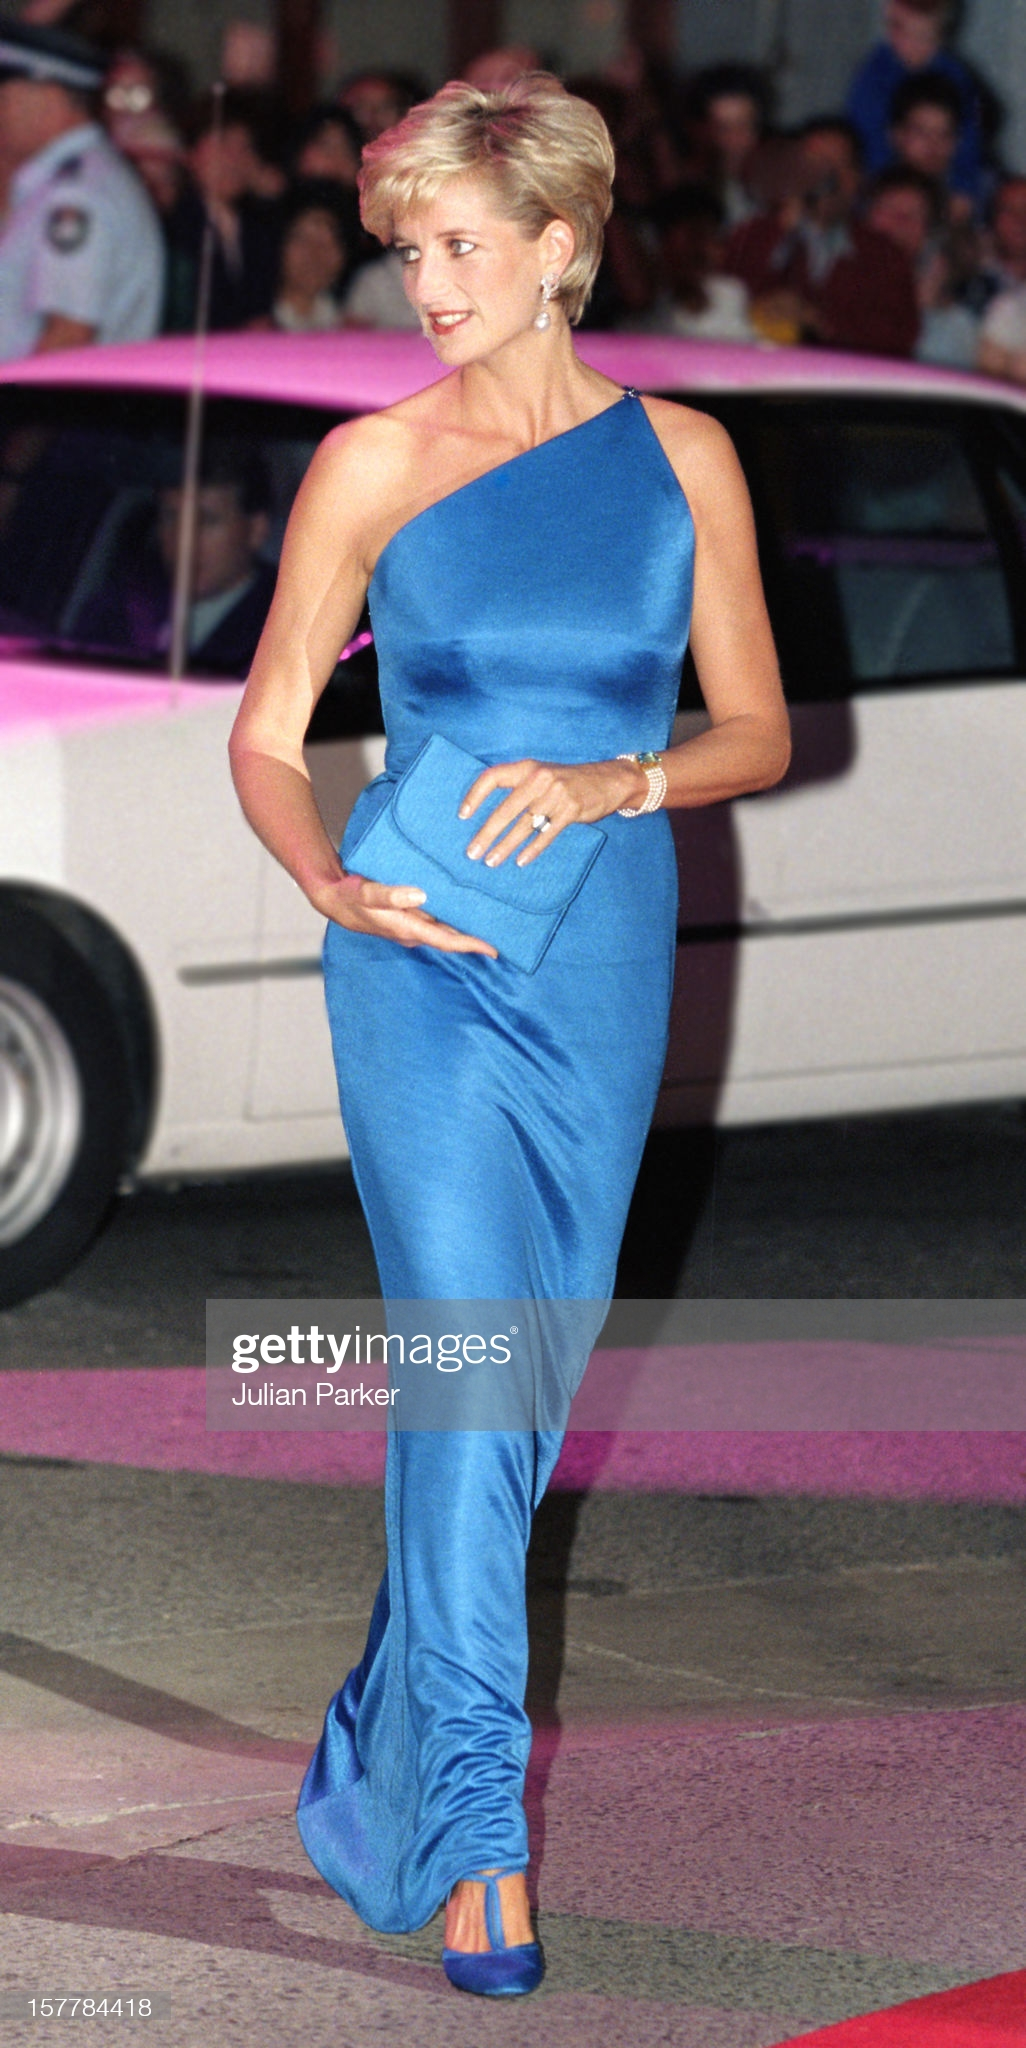 Diana, Princess Of Wales In Sydney, AustraliaDiana, Princess Of Wales Attends The Victor Chang Research Institute Dinner Dance During Her Visit To Sydney, Australia. (Photo by Julian Parker/UK Press via Getty Images)